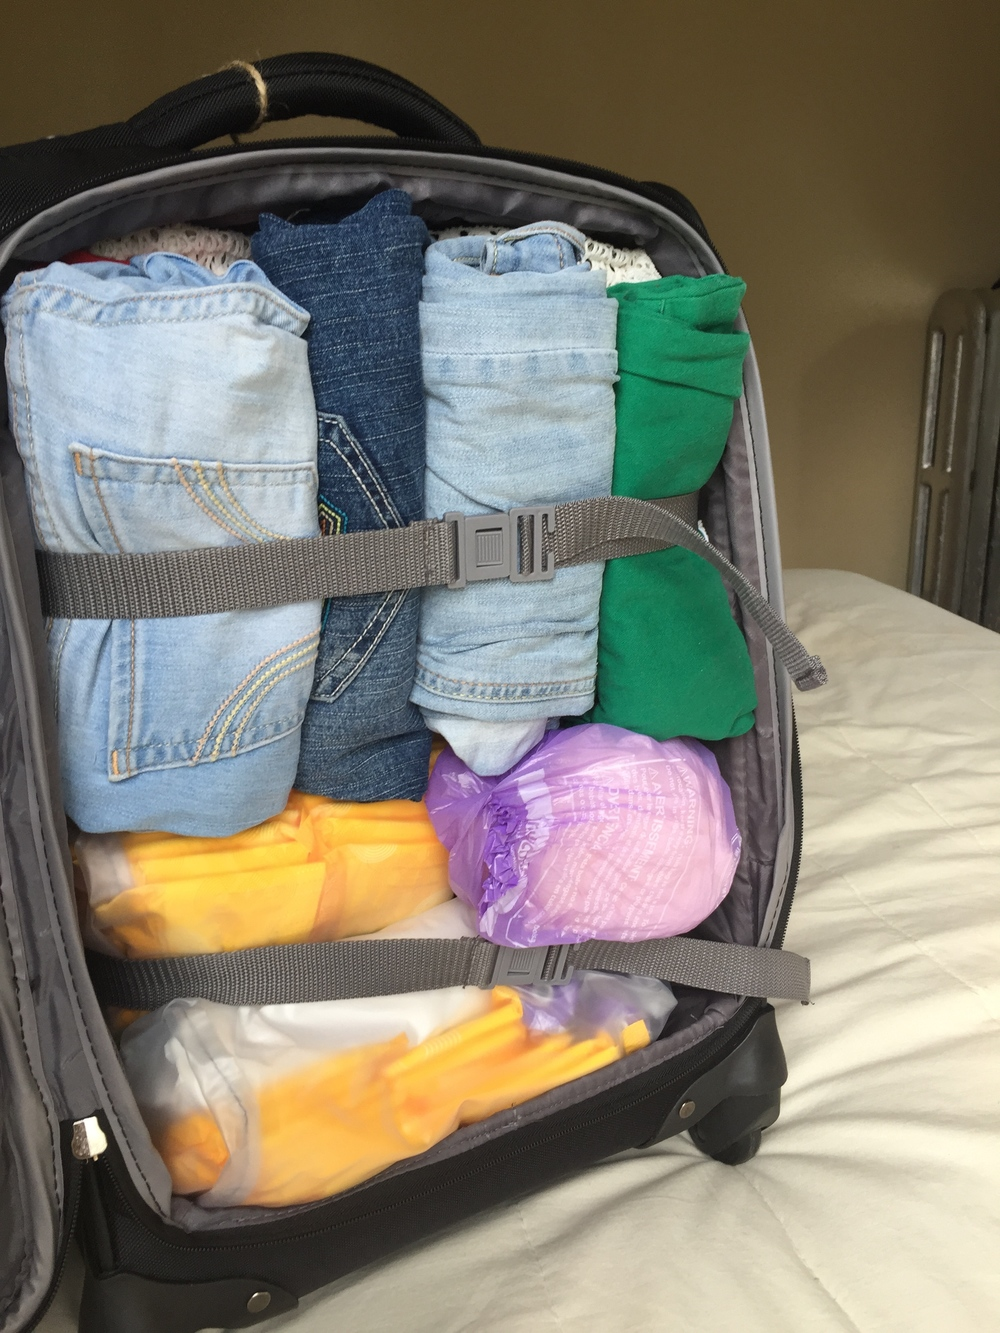 When in doubt, pack things you might need